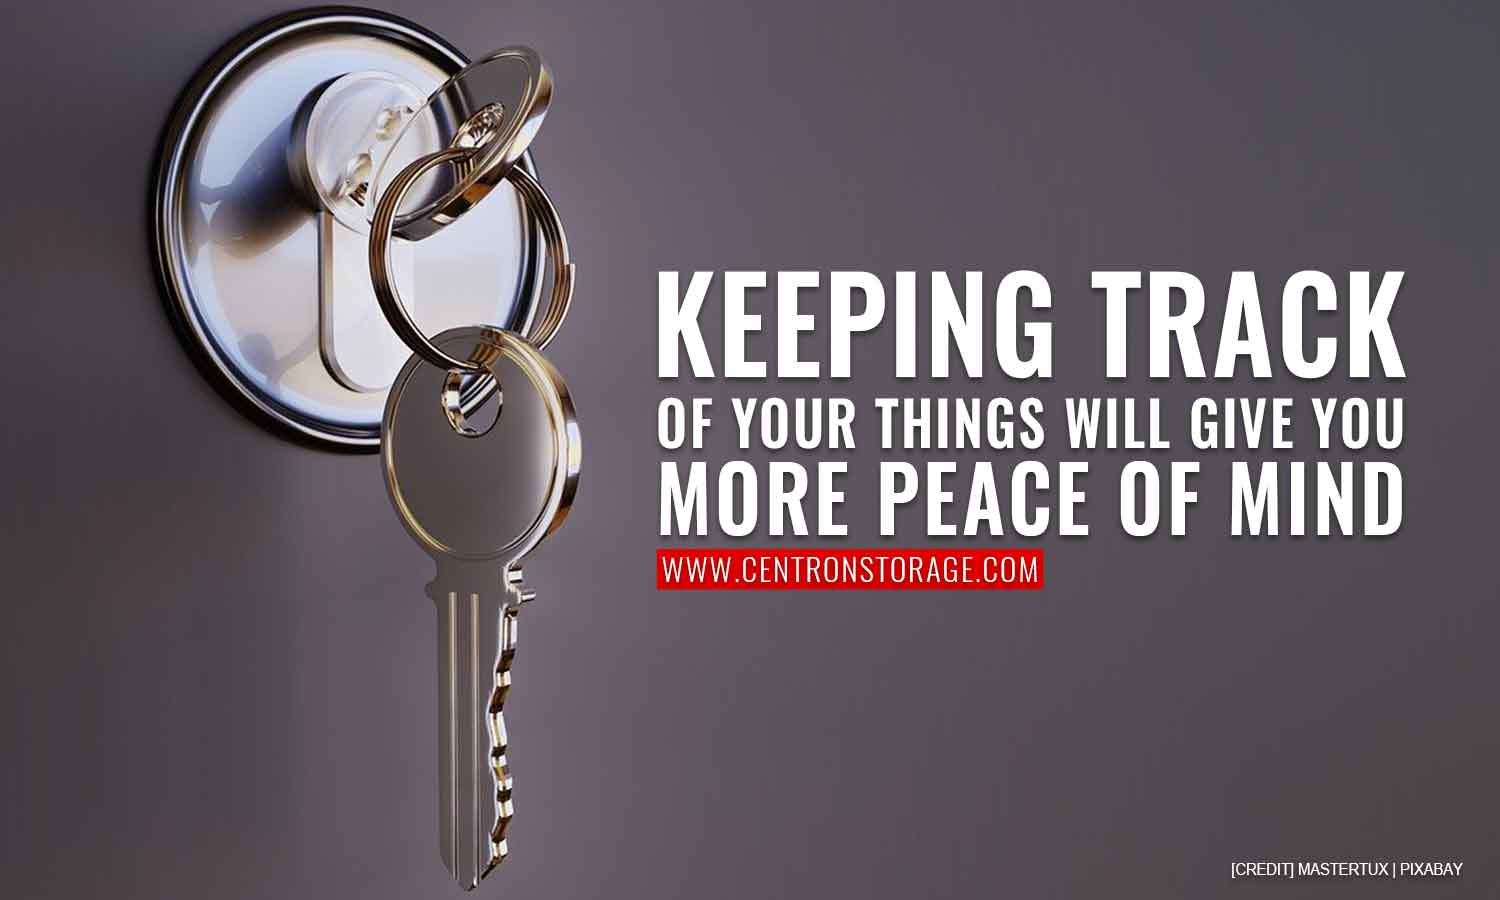 Keeping track of your things will give you more peace of mind